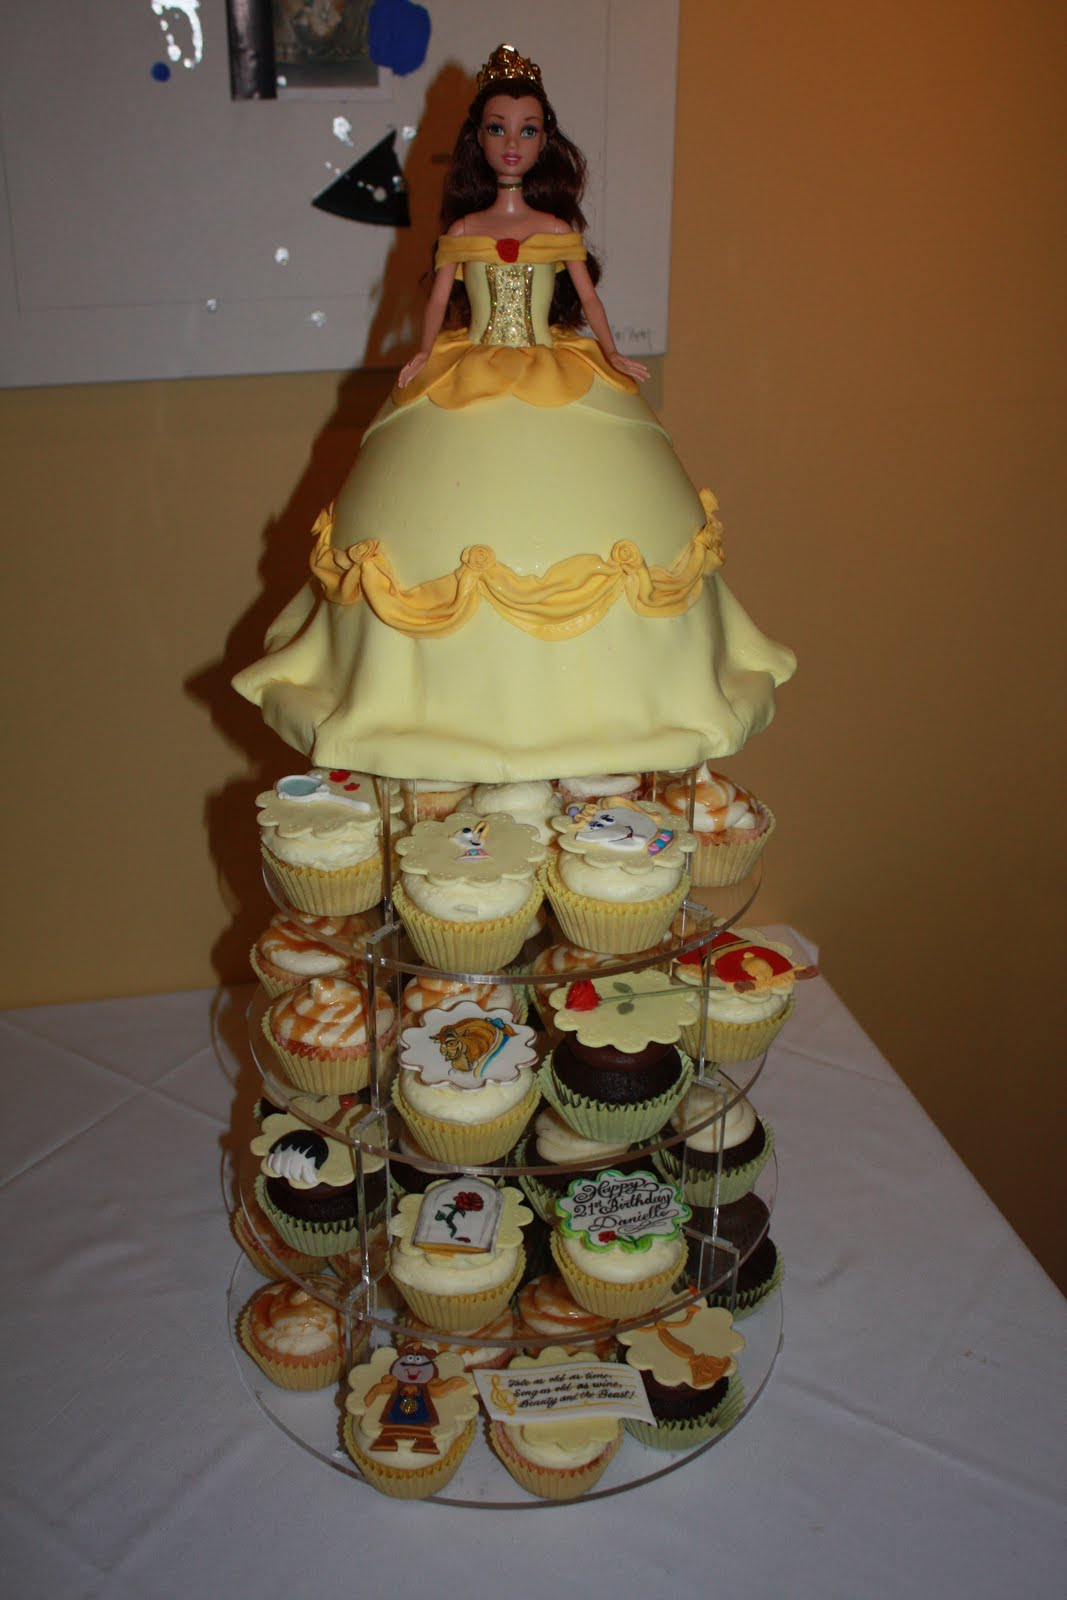 Yummy Mummy Cupcakes Barbie Cake and Beauty and the Beast Cupcakes